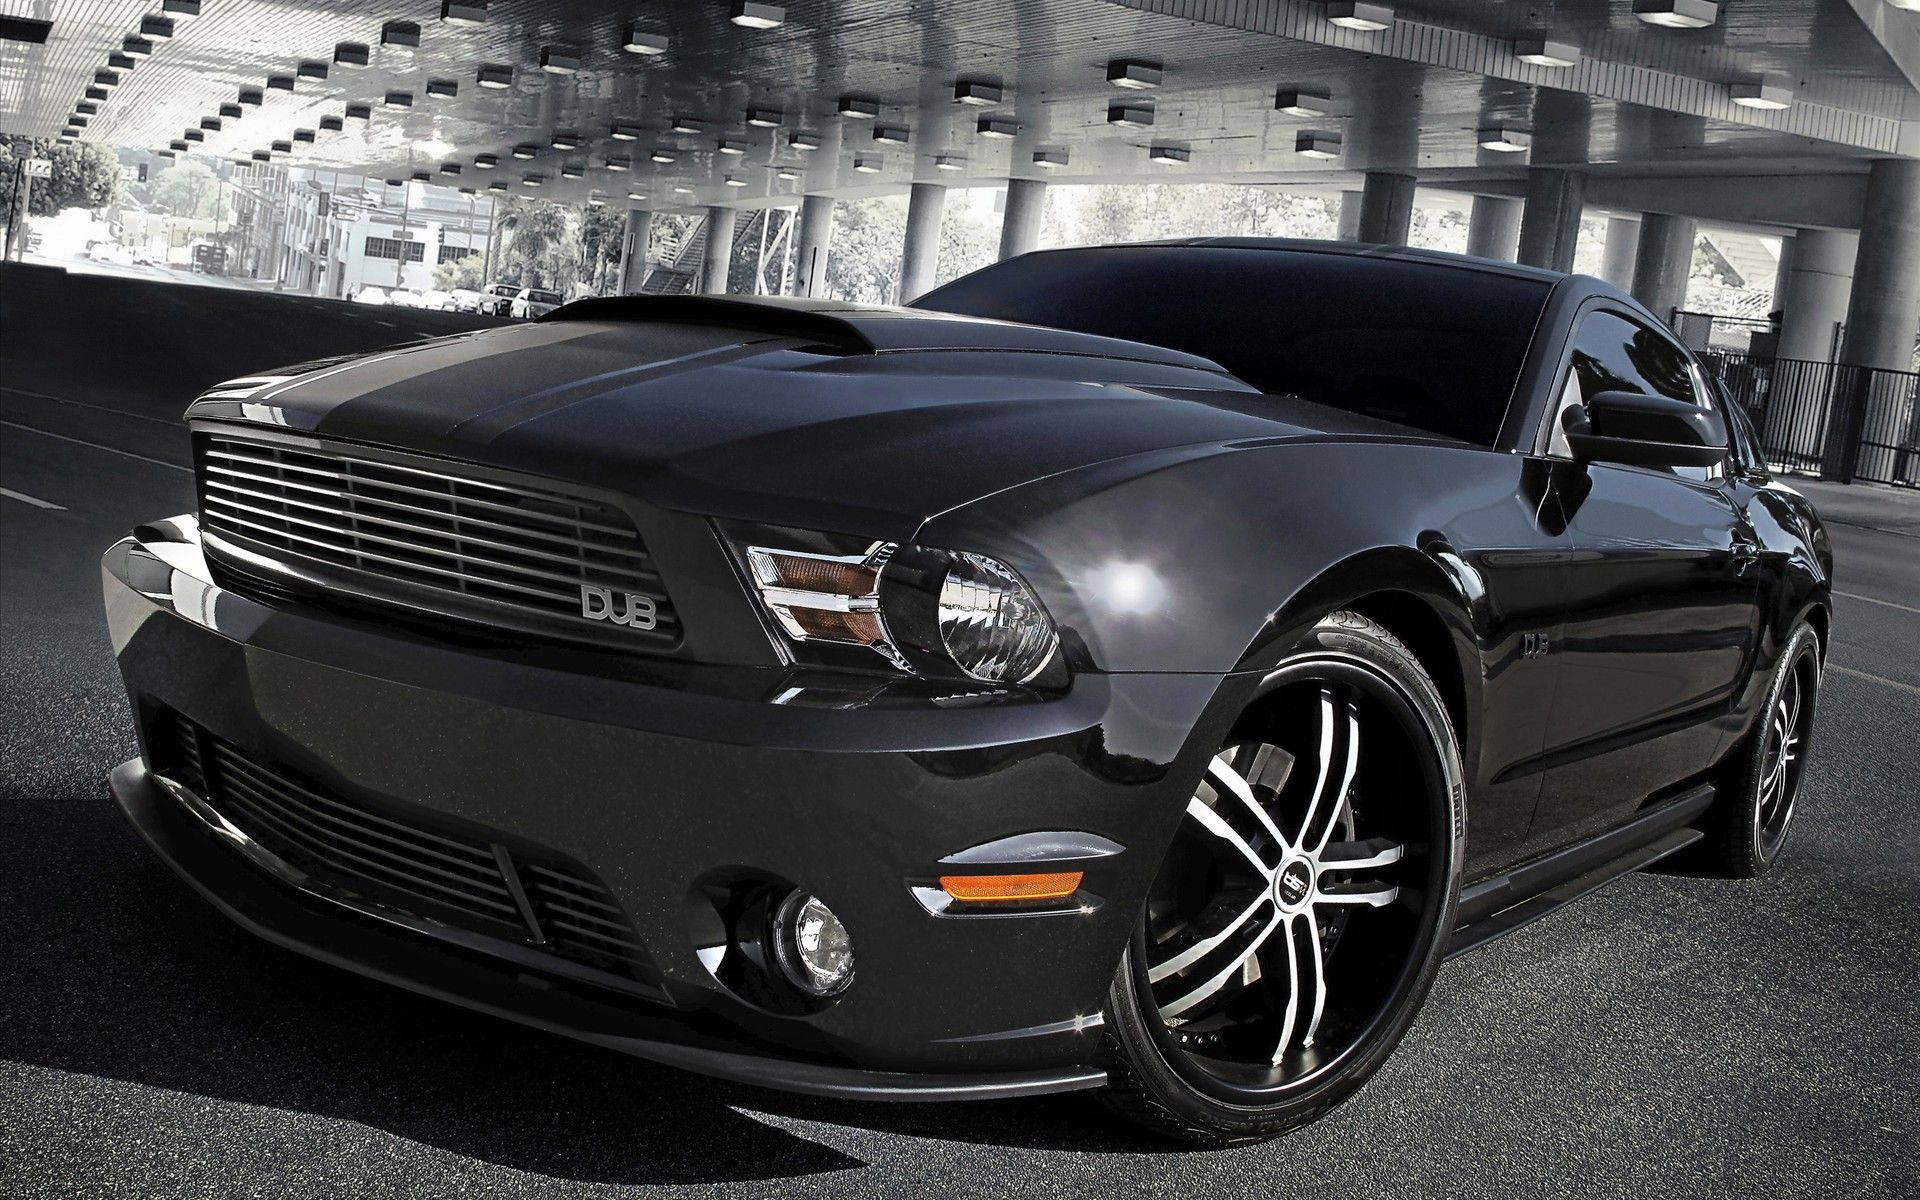 Ford Mustang HD Wallpapers For Desktop